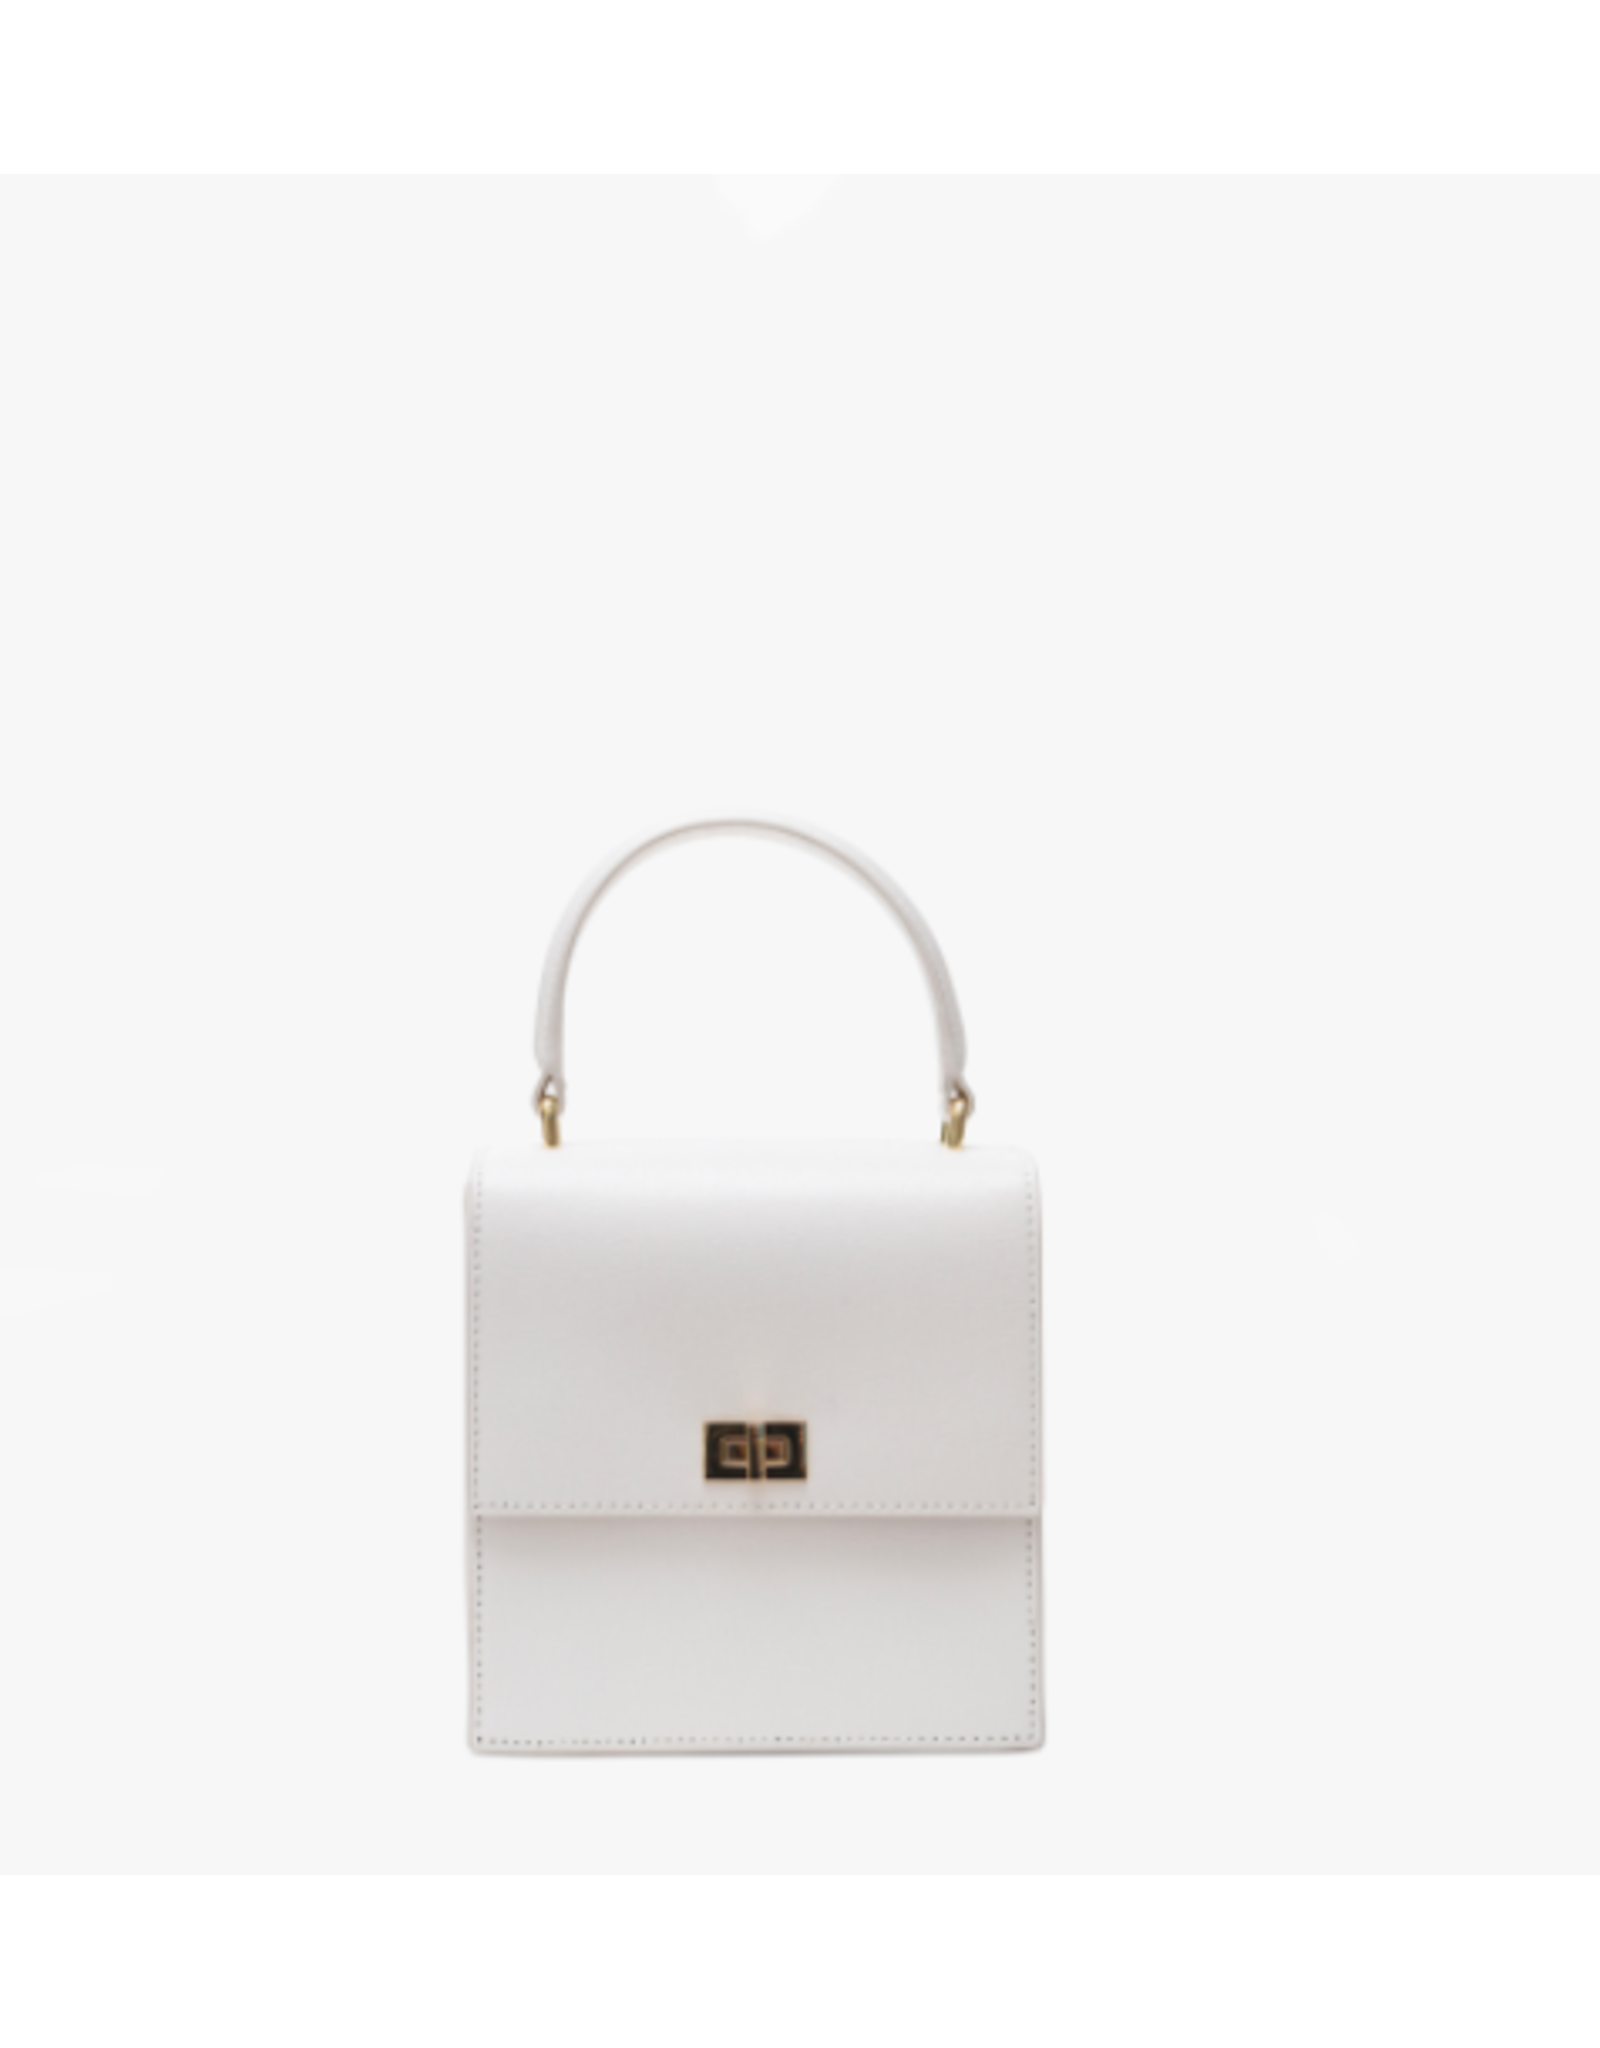 Neely & Chloe The Mini Lady Bag in White Saffiano by Neely & Chloe